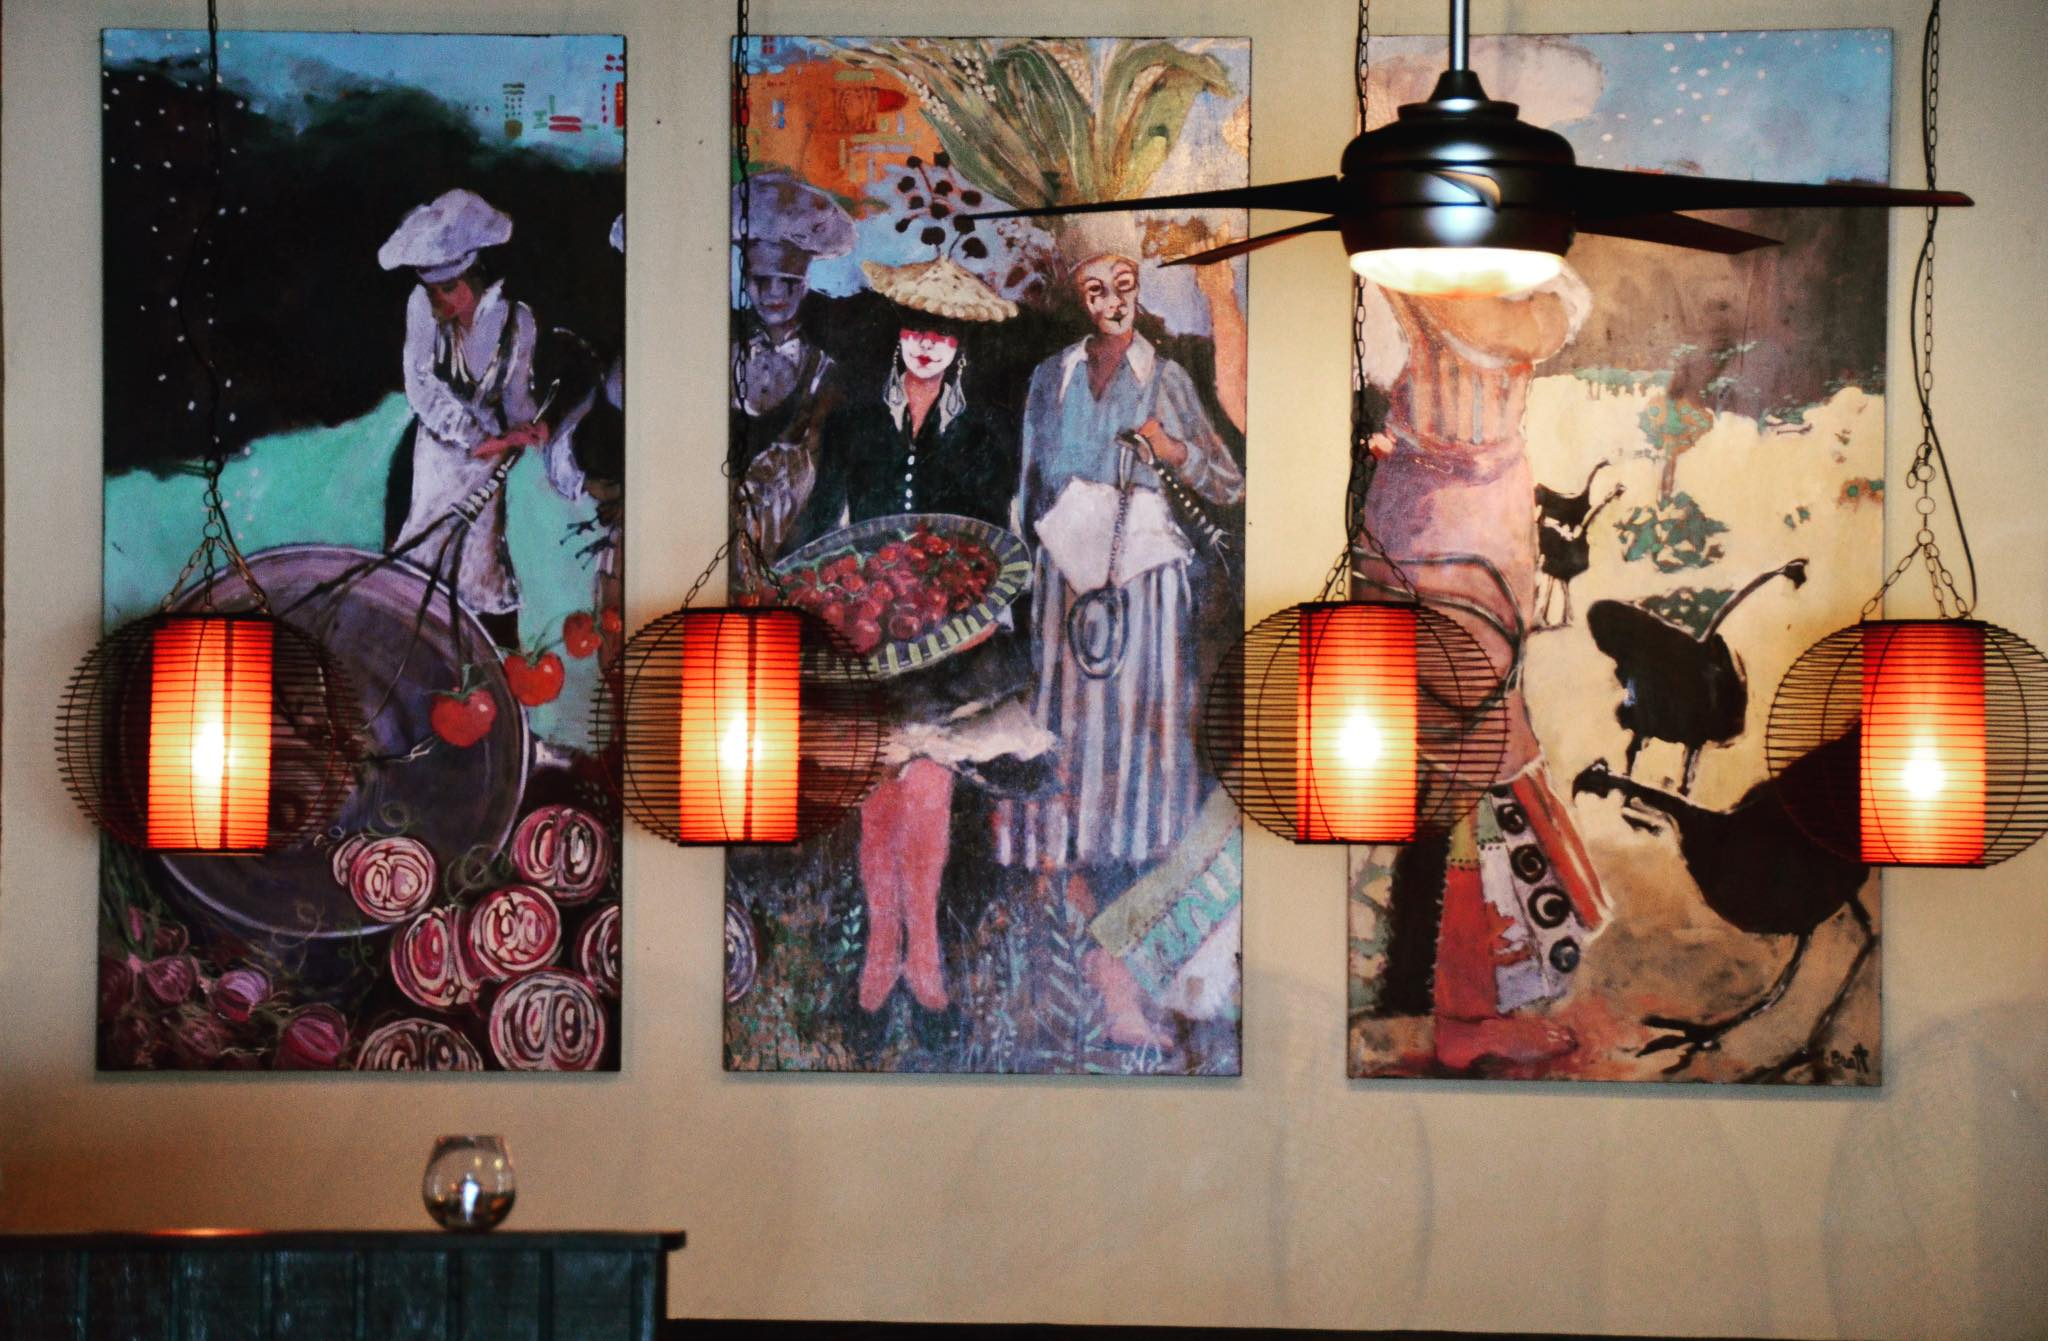 decorative wall with three paintings and light fixtures.